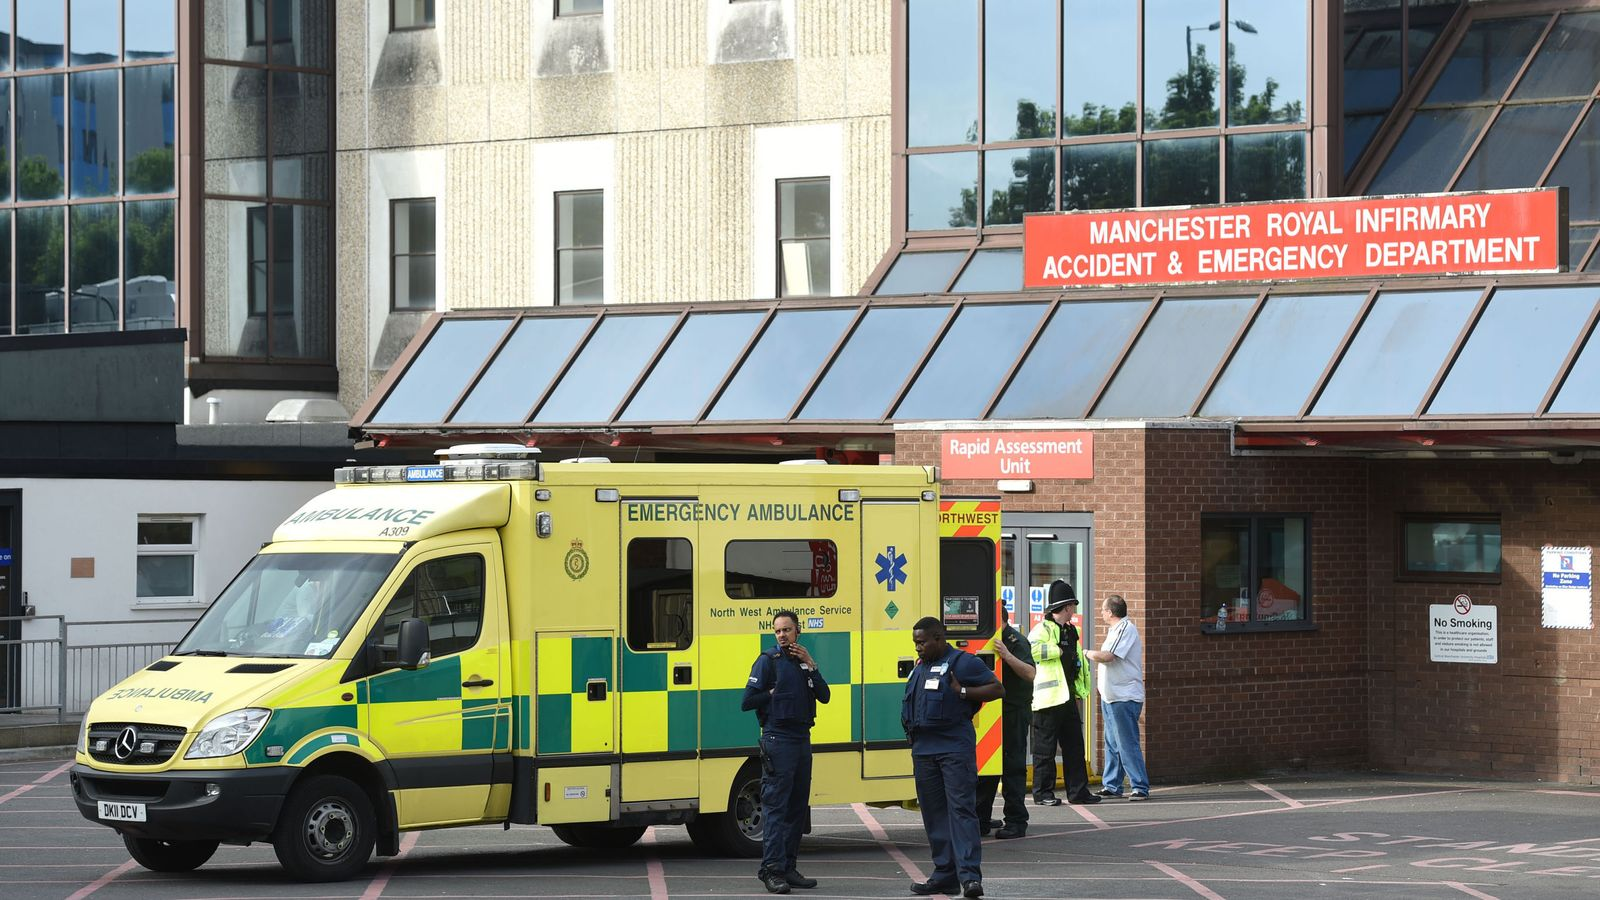 The scene at Manchester Royal Infirmary